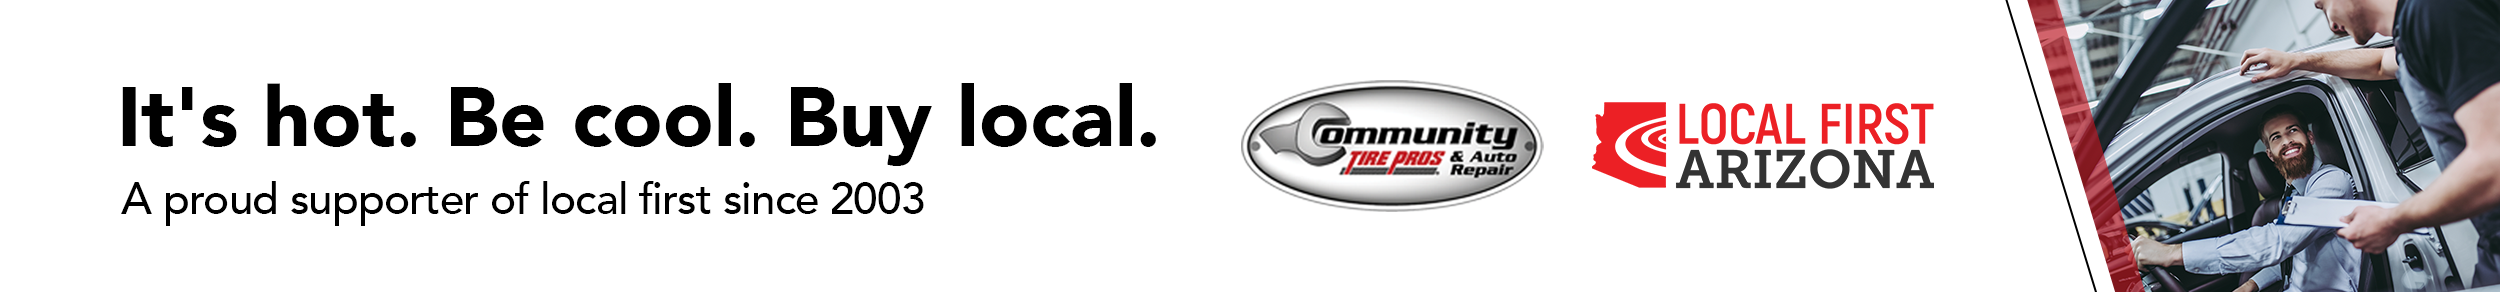 Community tire banner ad_local first_V2.png